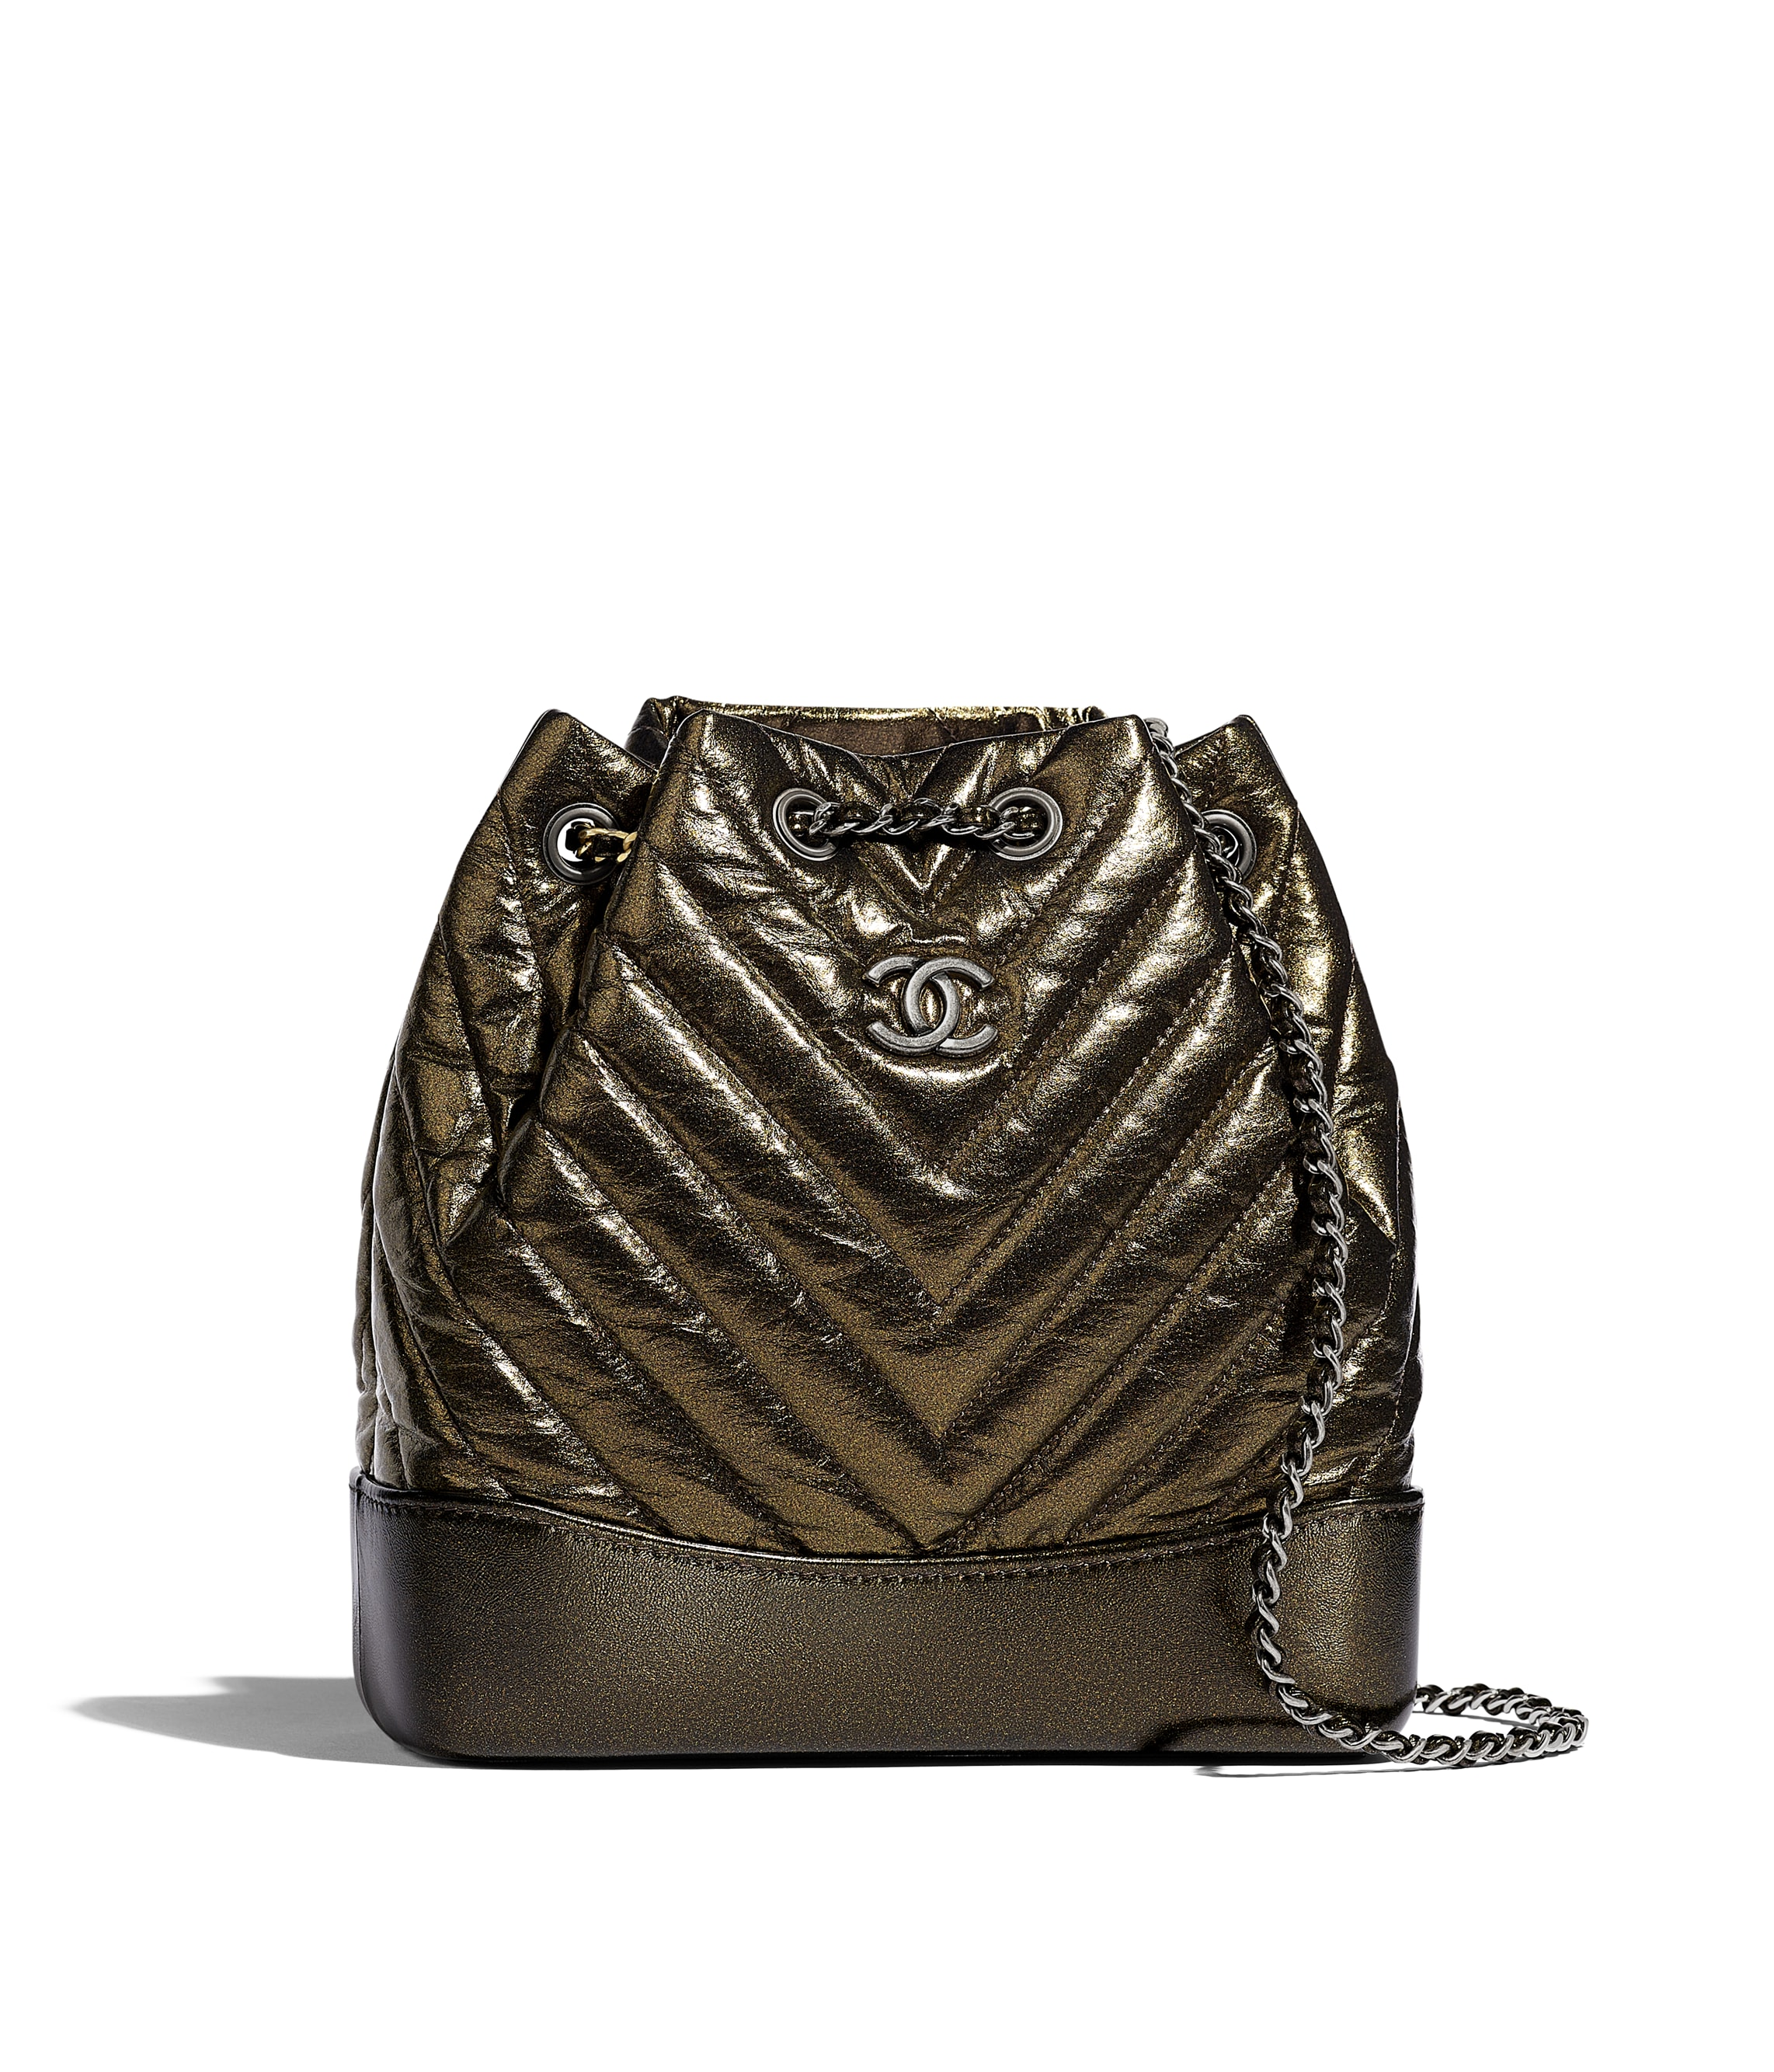 12aa16dd5 CHANEL'S GABRIELLE Small Backpack